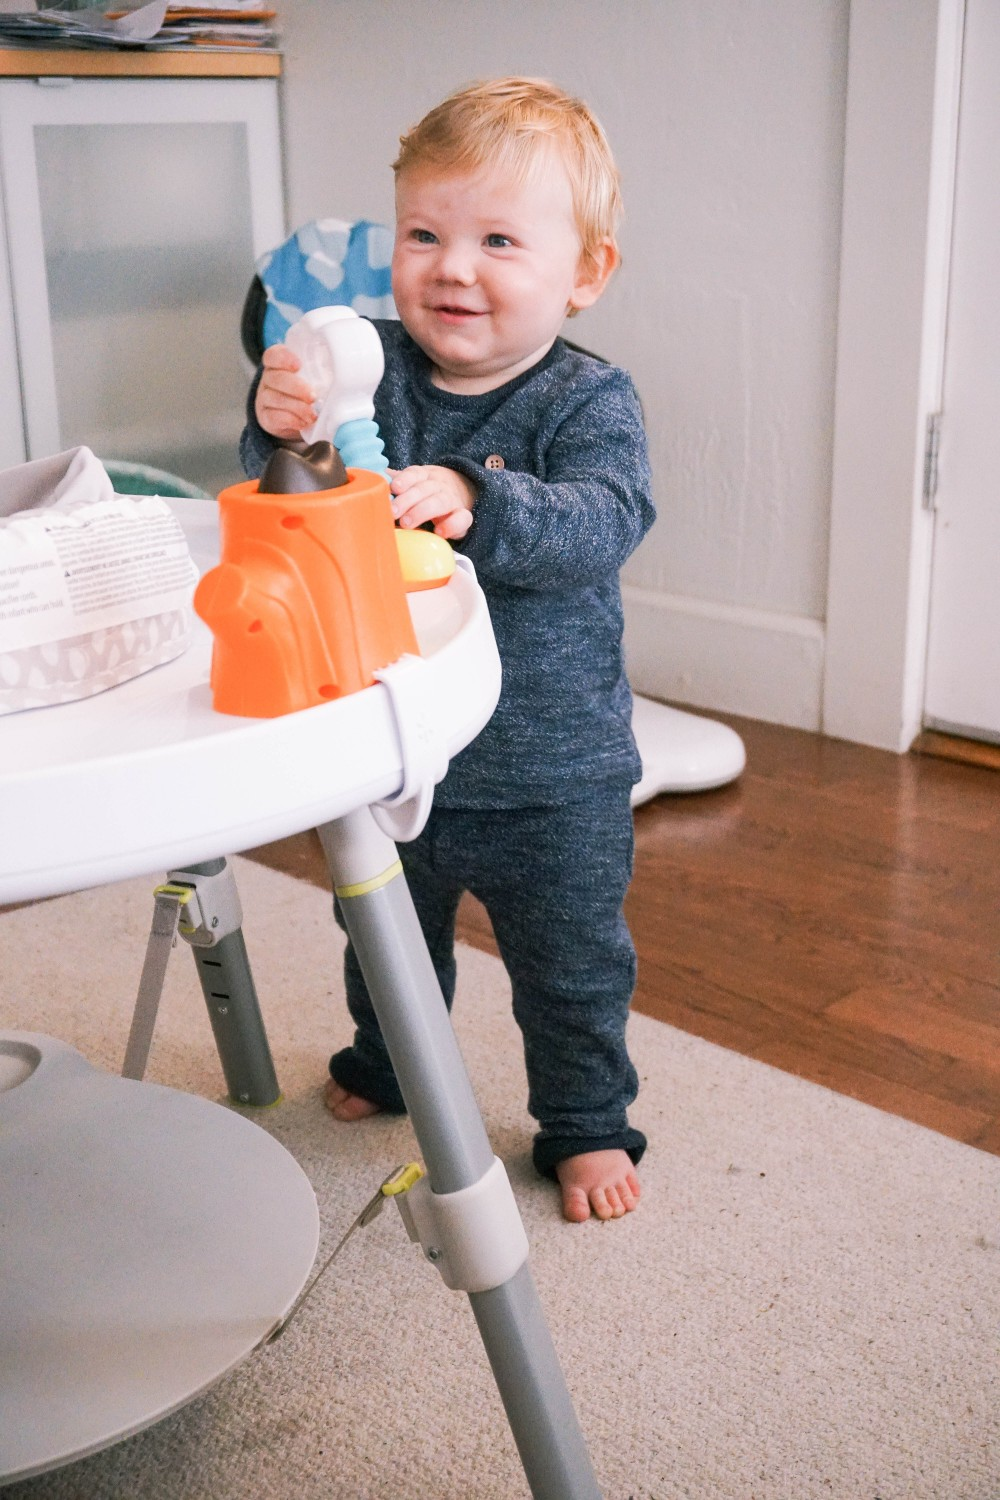 Carter's Baby-JCPenney-Baby Boy Clothes Under $30-Fall Fashion for Baby-Baby Clothing Sale-Have Need Want 12